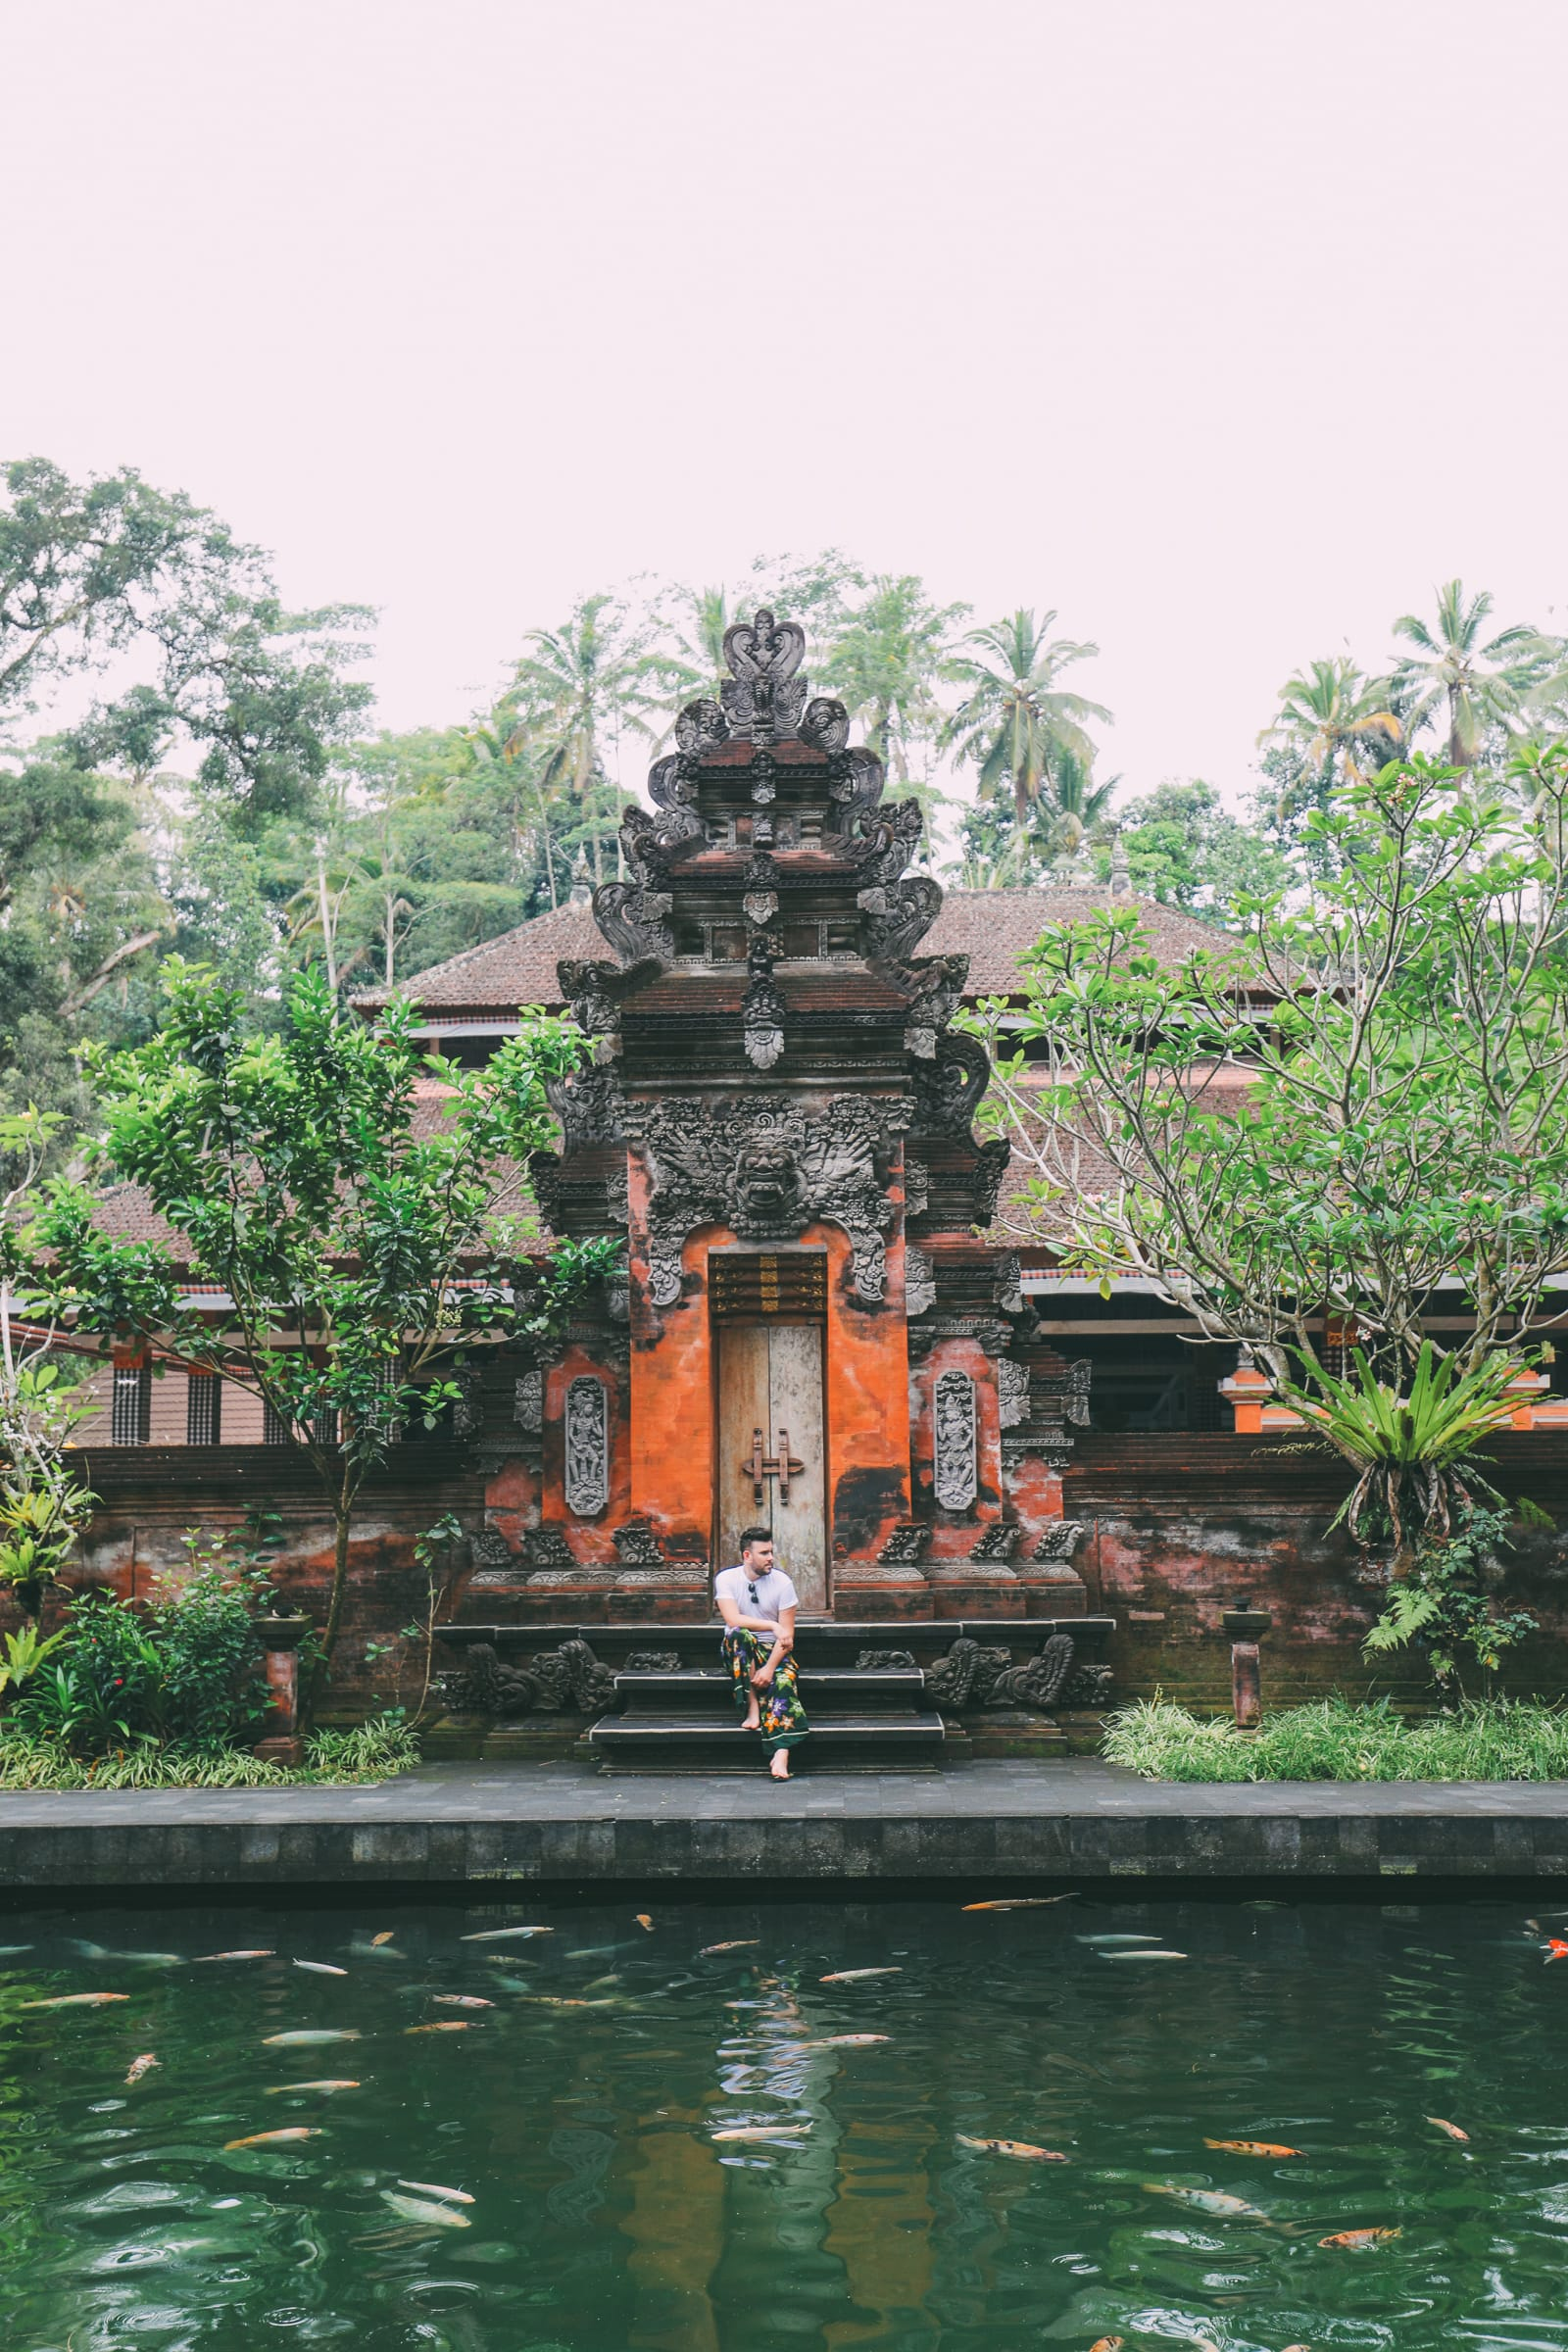 Finding A Secret Waterfall in Bali, Tirta Empul Temple And Mount Batur Volcano (13)